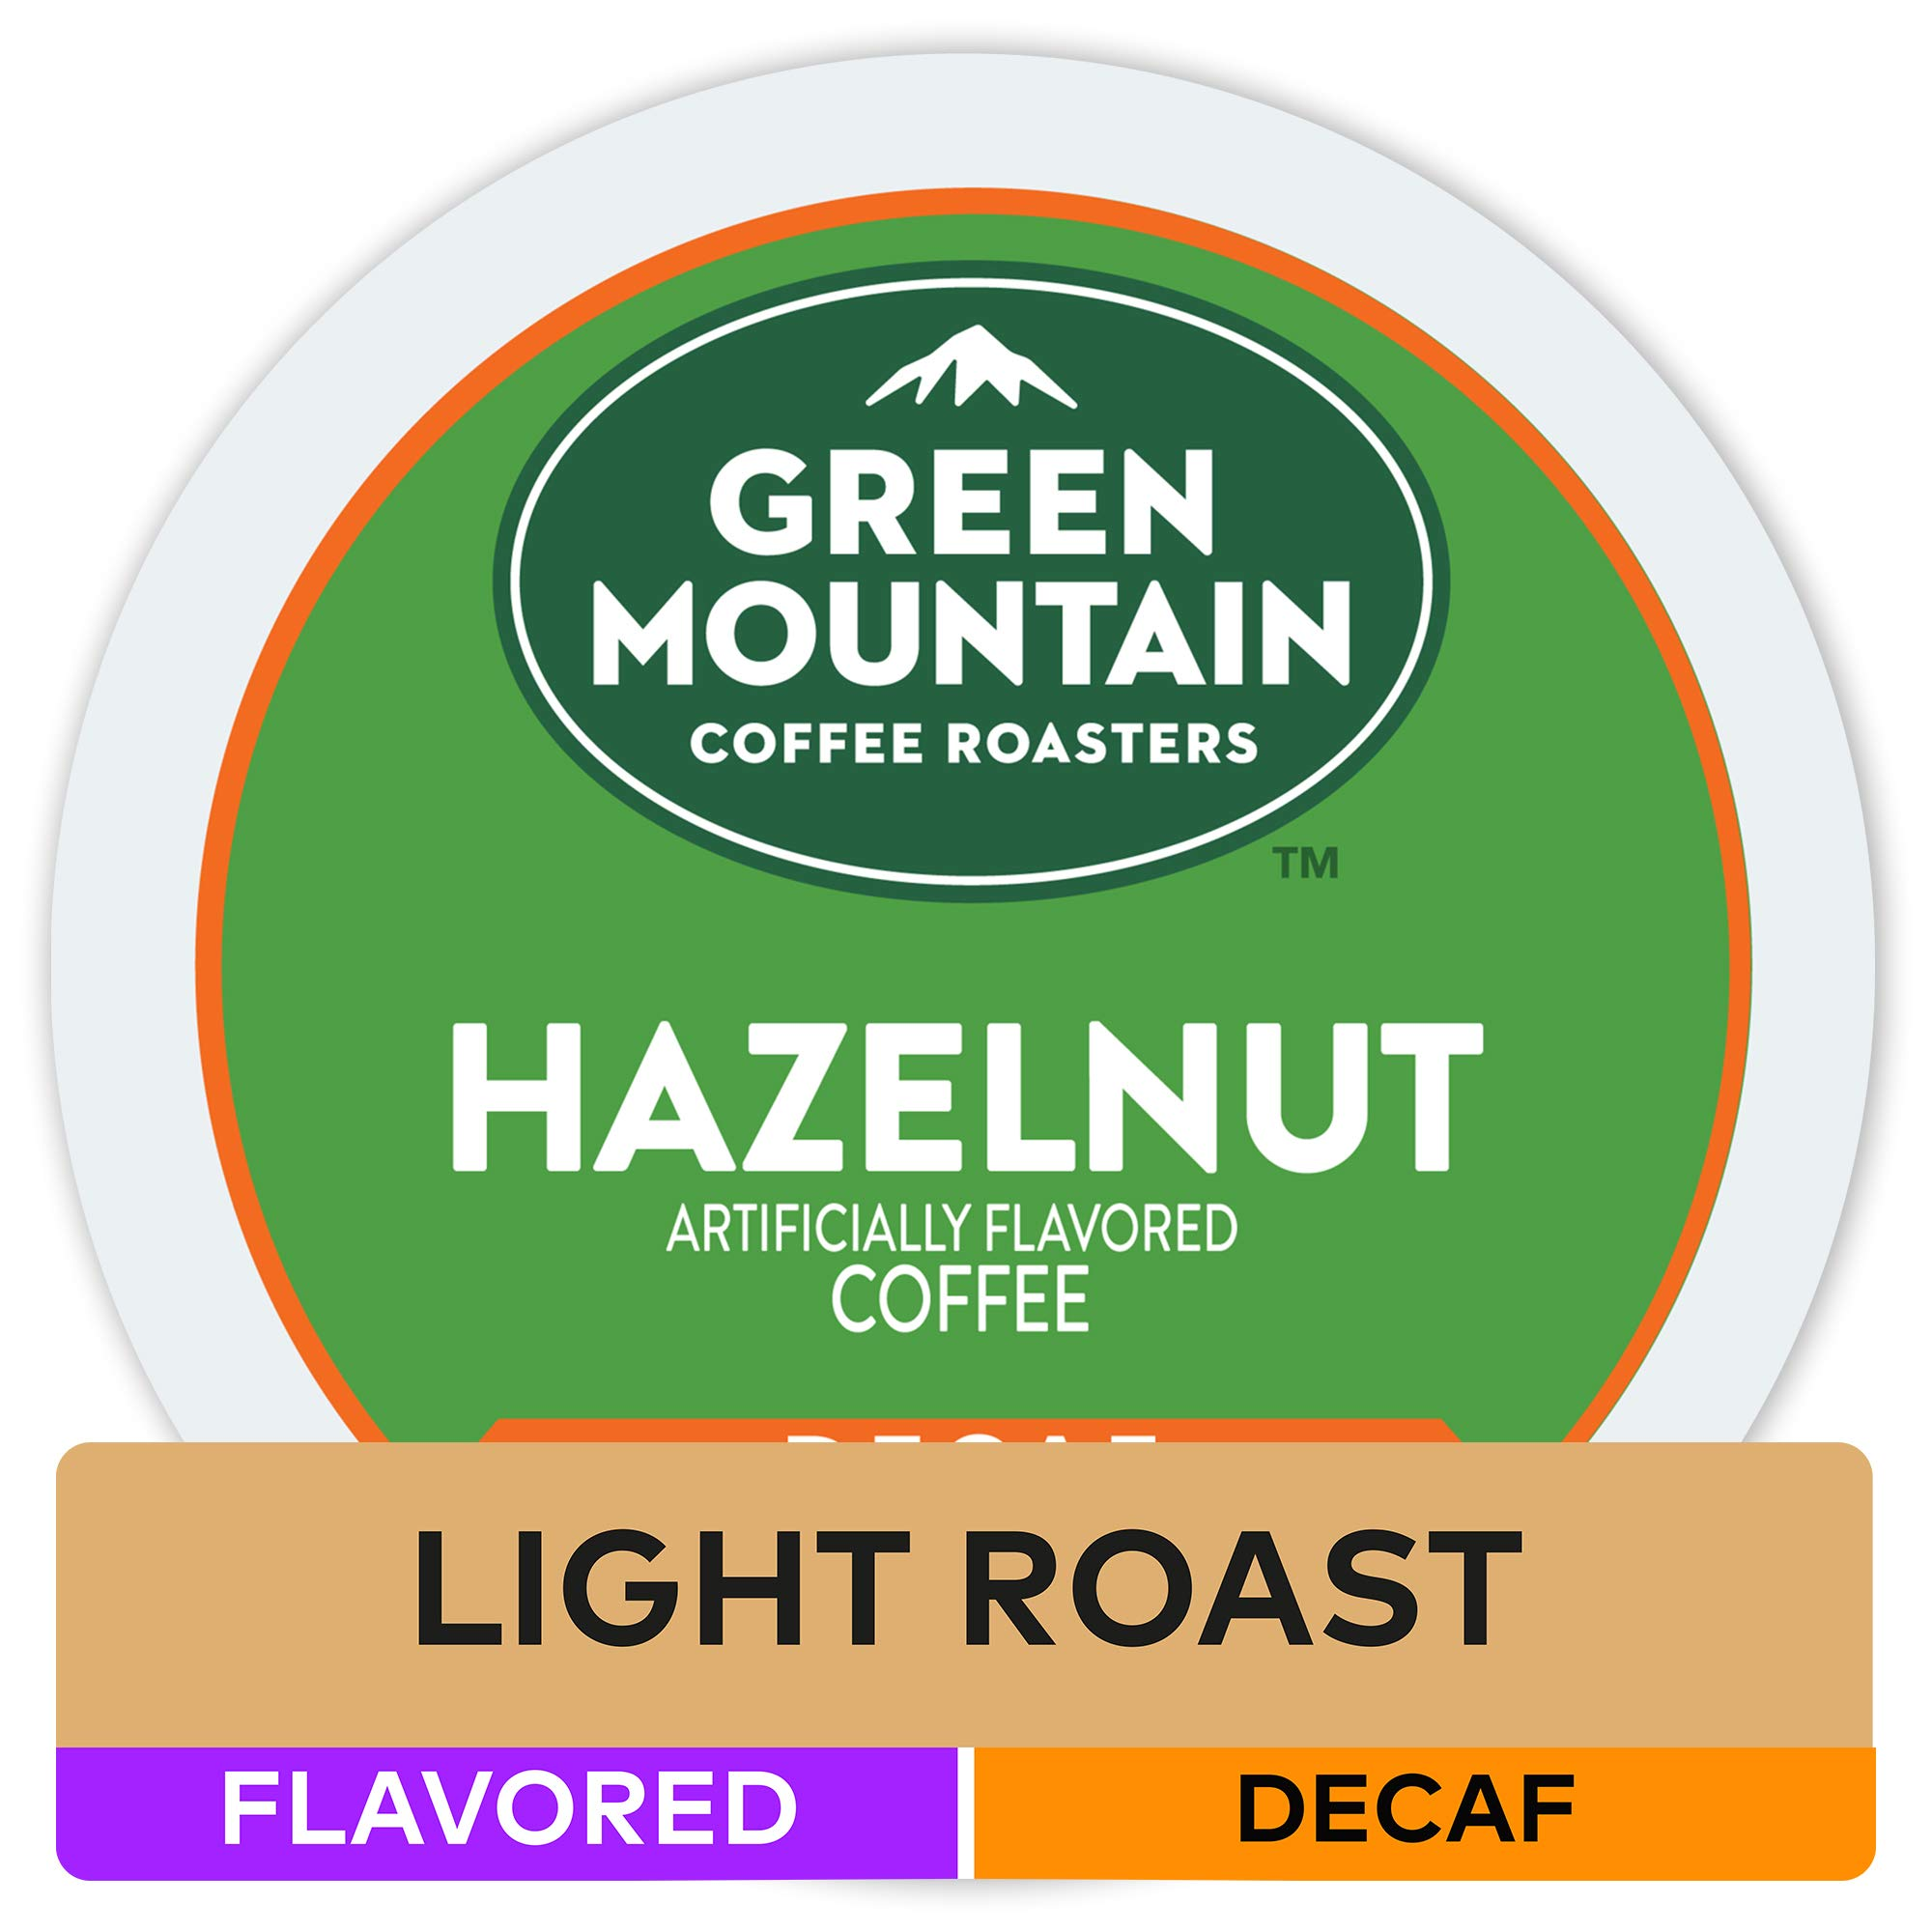 Green Mountain Coffee Roasters Hazelnut, Single Serve Coffee K-Cup Pod, Decaf, 12 Count (Pack of 6) (Packaging May Vary), 72 Count by Green Mountain Coffee Roasters